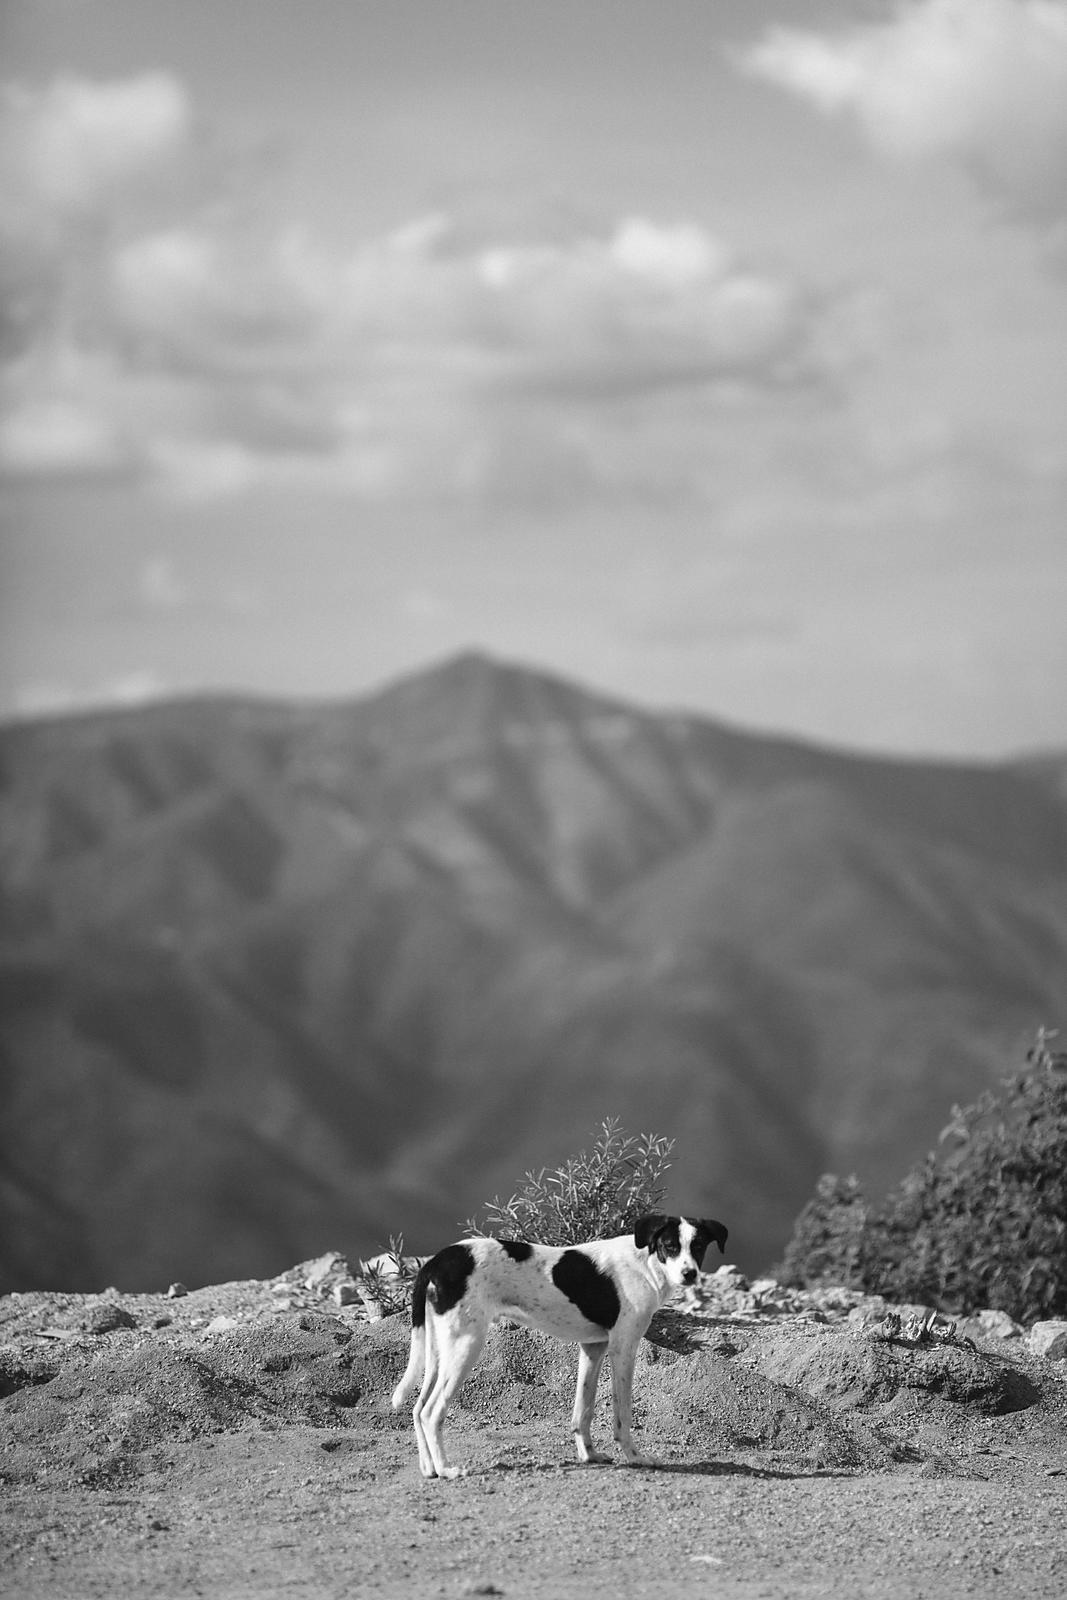 A dog in Oaxaca